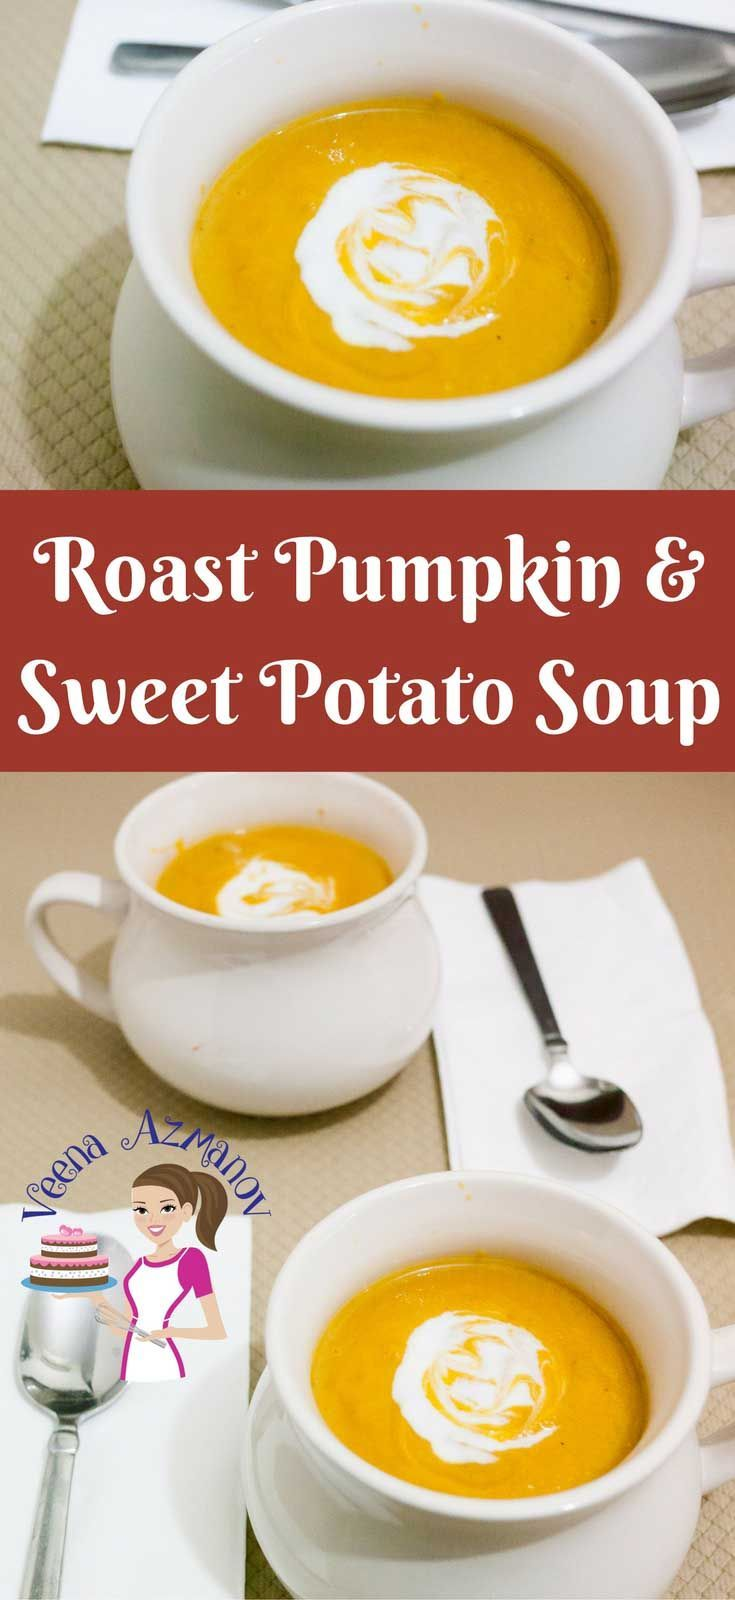 ROAST PUMPKIN SWEET POTATO SOUP RECIPE - COMFORT SOUP This Roast Pumpkin and Sweet Potato Soup is the simplest and easiest soup recipe that you can make. Roasting the veggies brings out the sweetness of the vegetables and adds to the velvet texture of the soup. via @Veenaazmanov #pumpkin #sweetpotato #soup #pumpkinsoup #sweetpotatosoup #pumpkinsweetpotatosoup #howtosoup #easysoup #recipe #roastpumpkin #roastsweetpotato #healthy #healthysoups